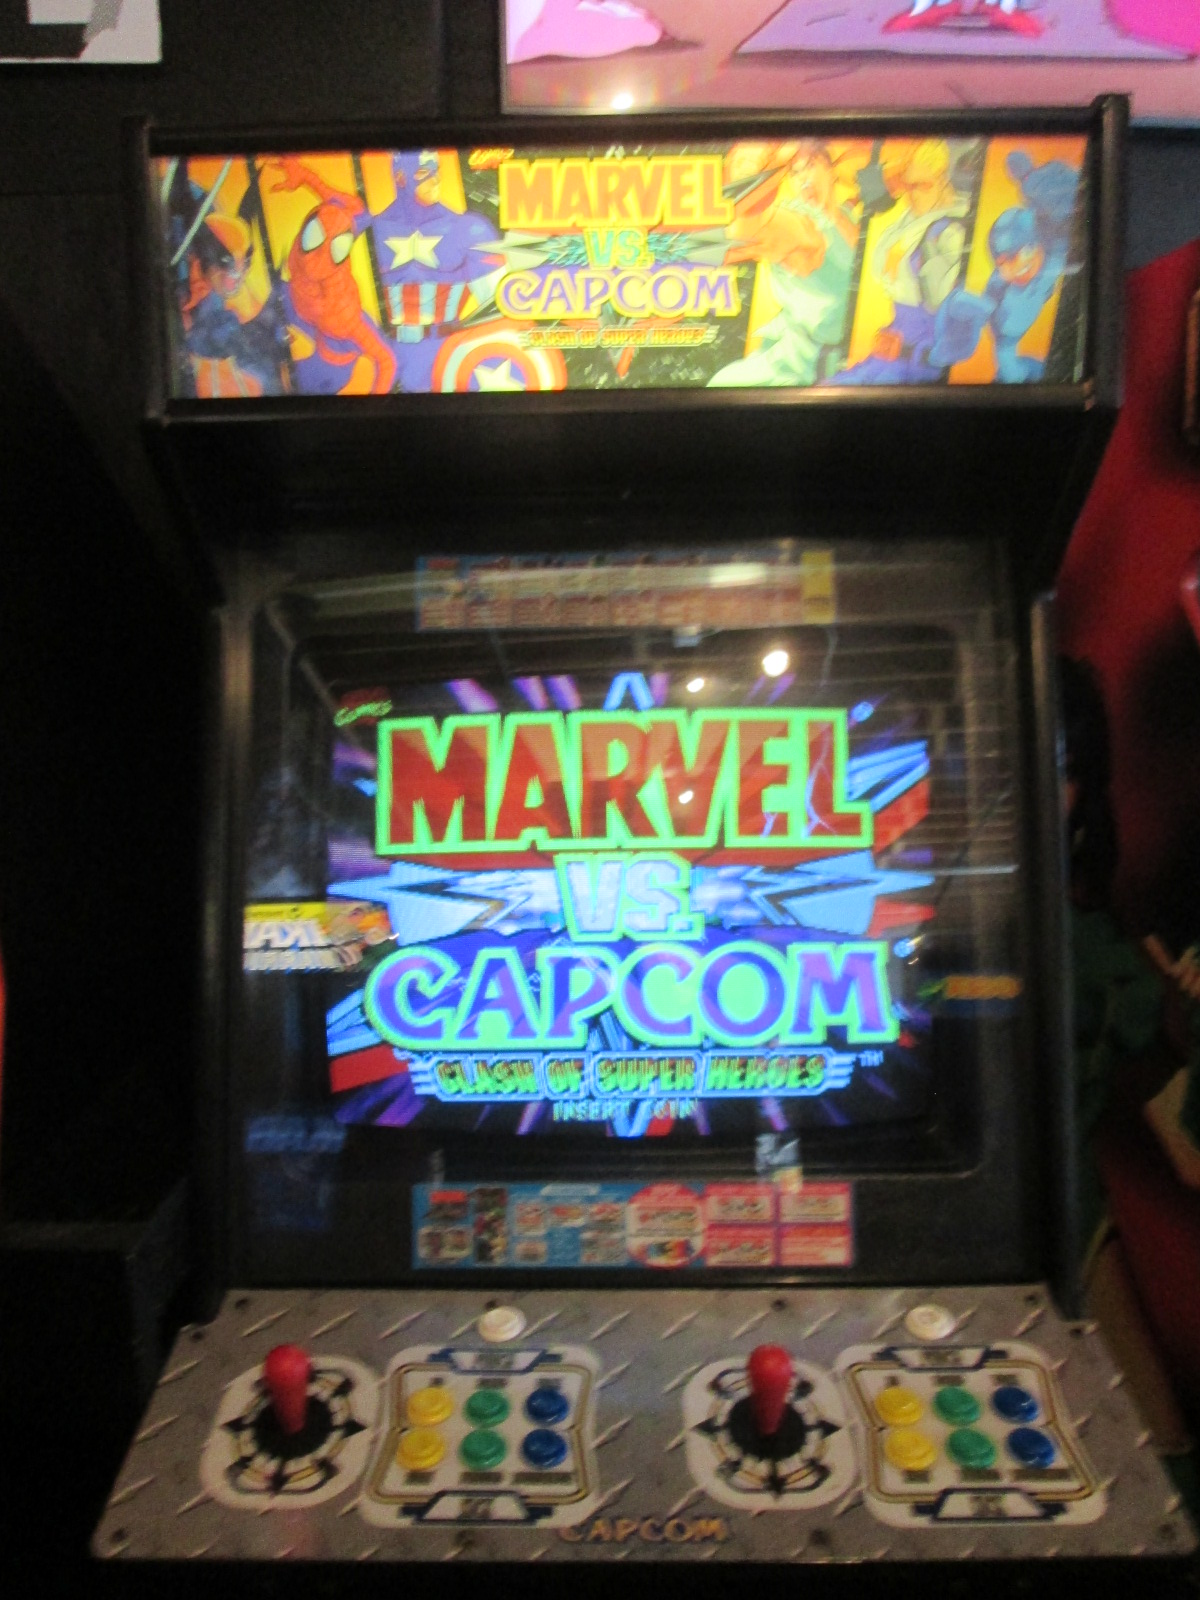 ed1475: Marvel vs. Capcom: Clash of Super Heroes (Arcade) 123,600 points on 2016-09-18 15:20:36